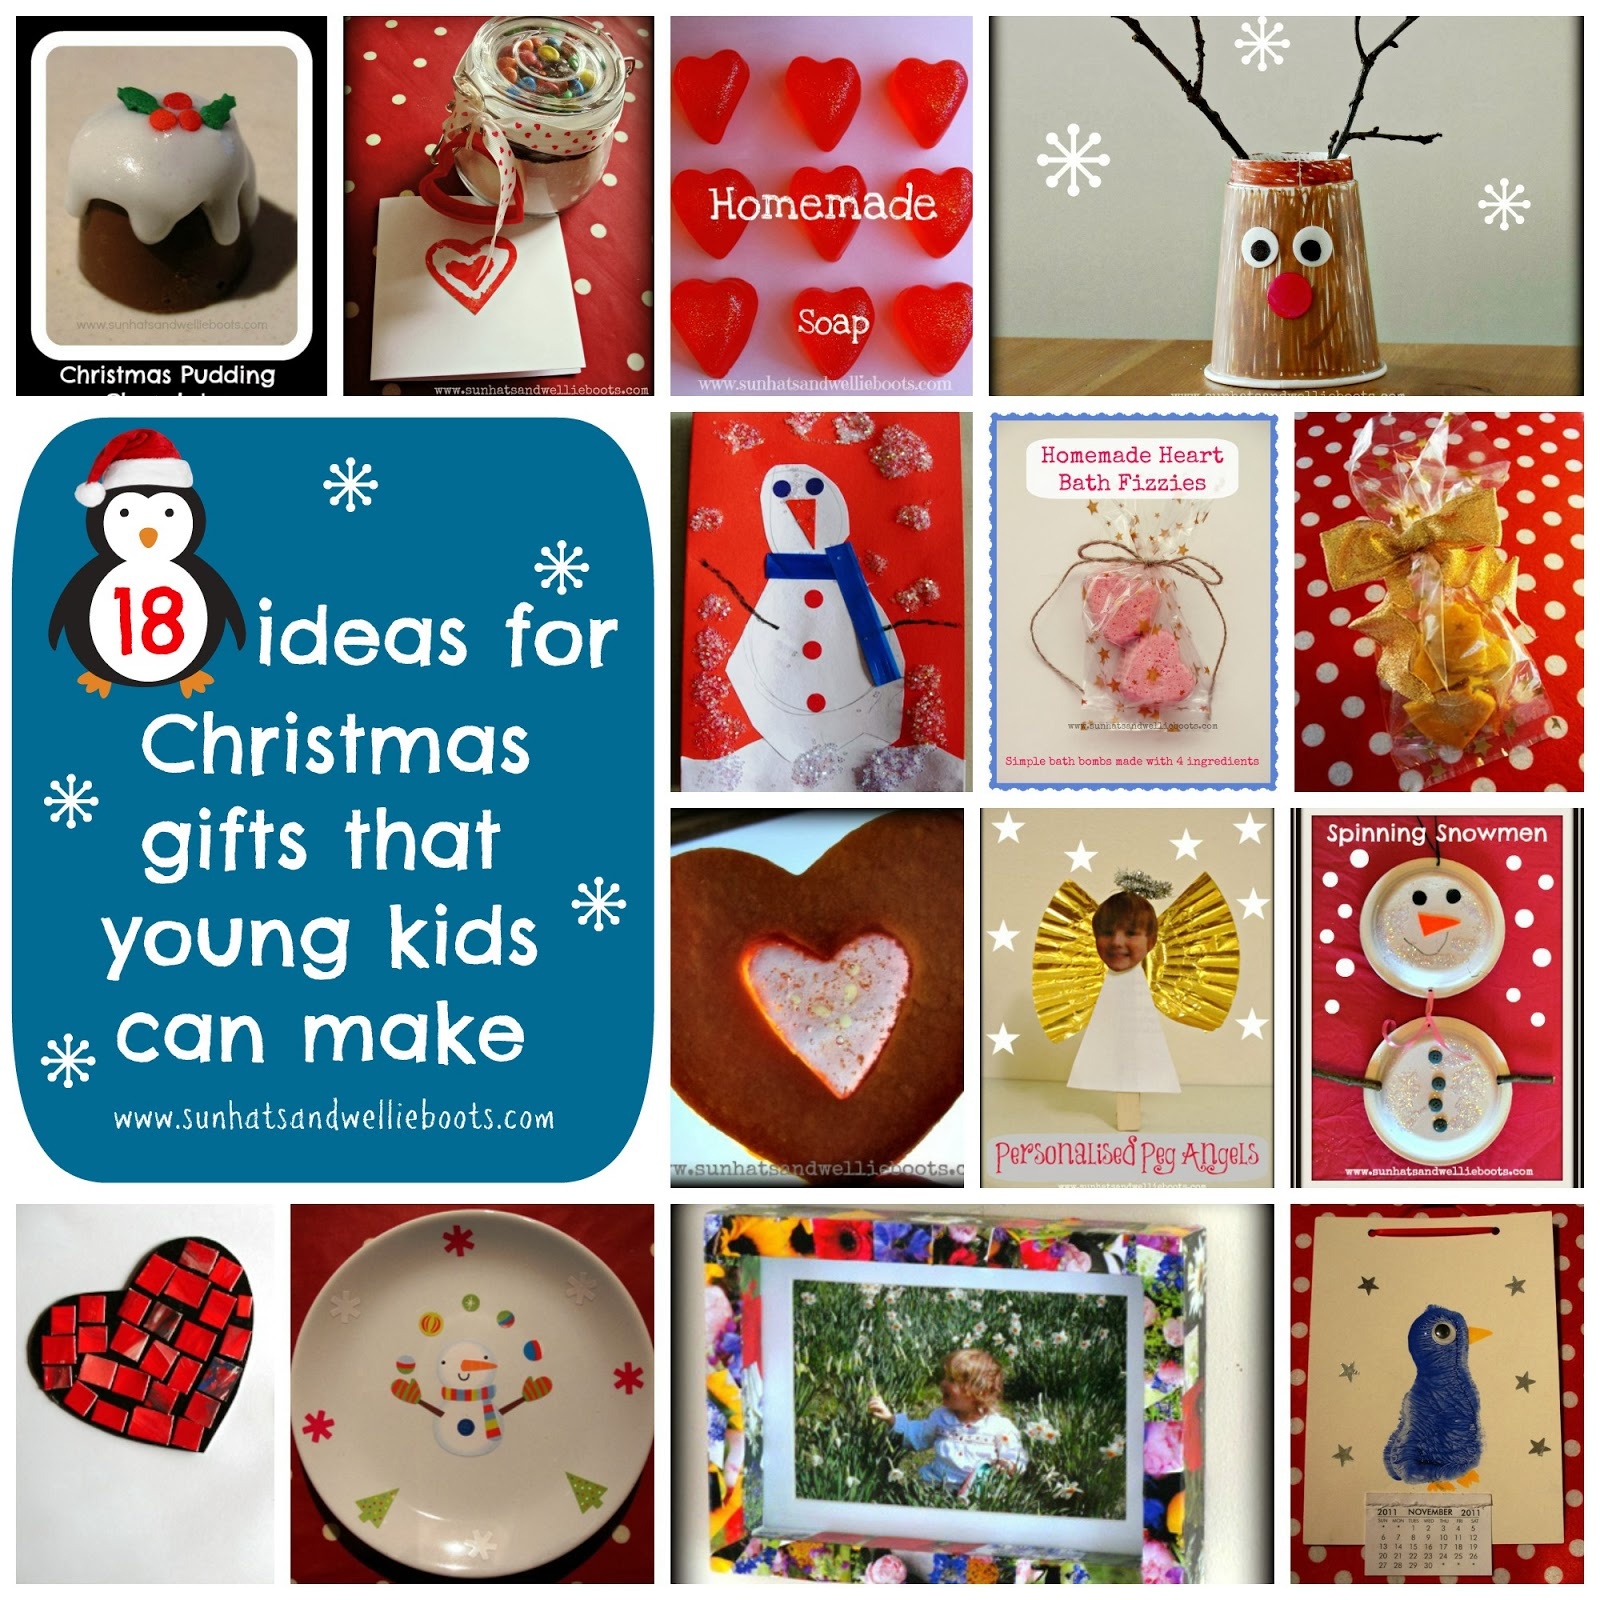 Sun Hats & Wellie Boots: 18 Homemade Christmas Gifts That Young Kids ...